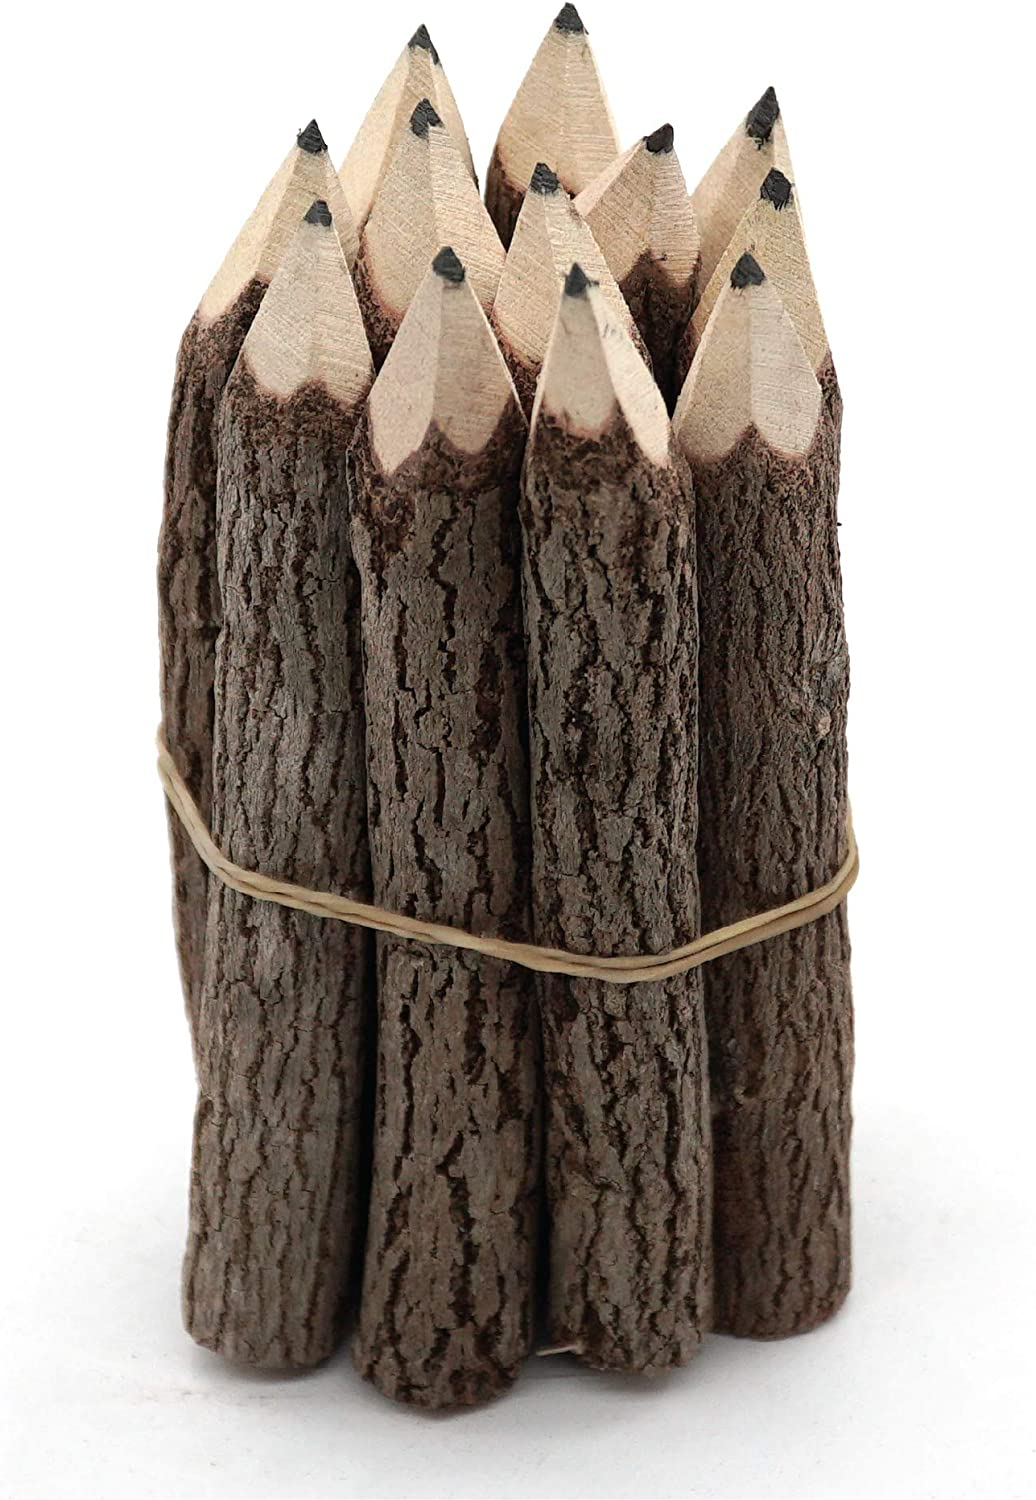 Black 3 Inch Mini Pencils Wood of 12 in Pack Tree Bark Favors in Wooden Rustic Twig Pencils Unique Camping Gifts Lumberjack Decorations Party Supplies Novelty Gifts as Natural Pencil for Kids